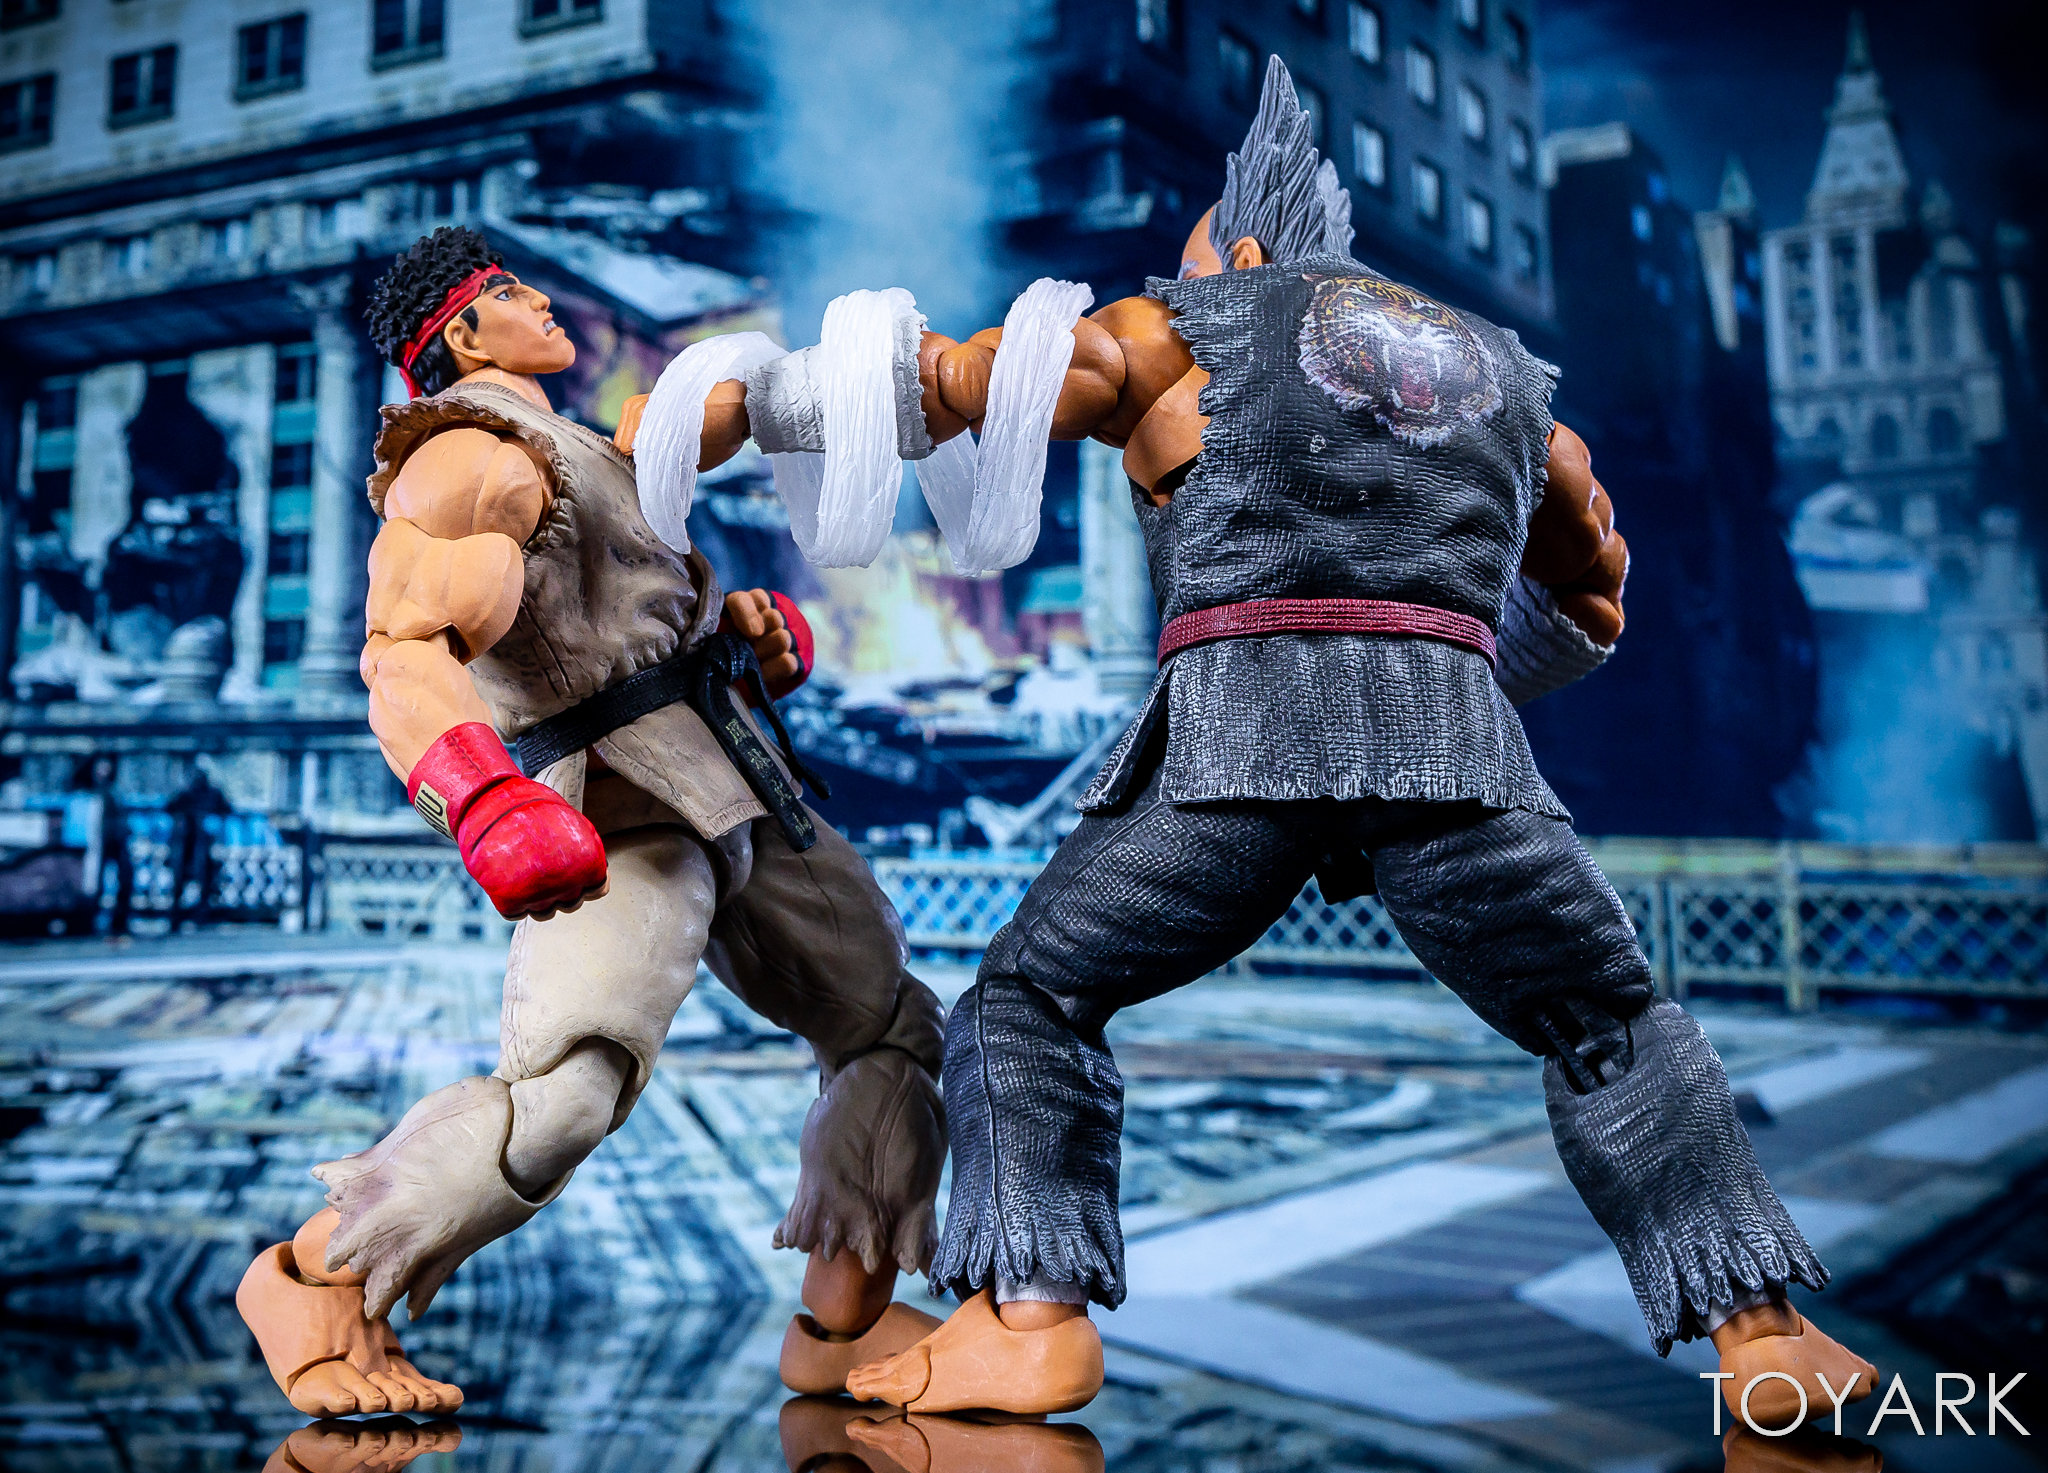 https://news.toyark.com/wp-content/uploads/sites/4/2018/05/Storm-Heihachi-Figure-030.jpg